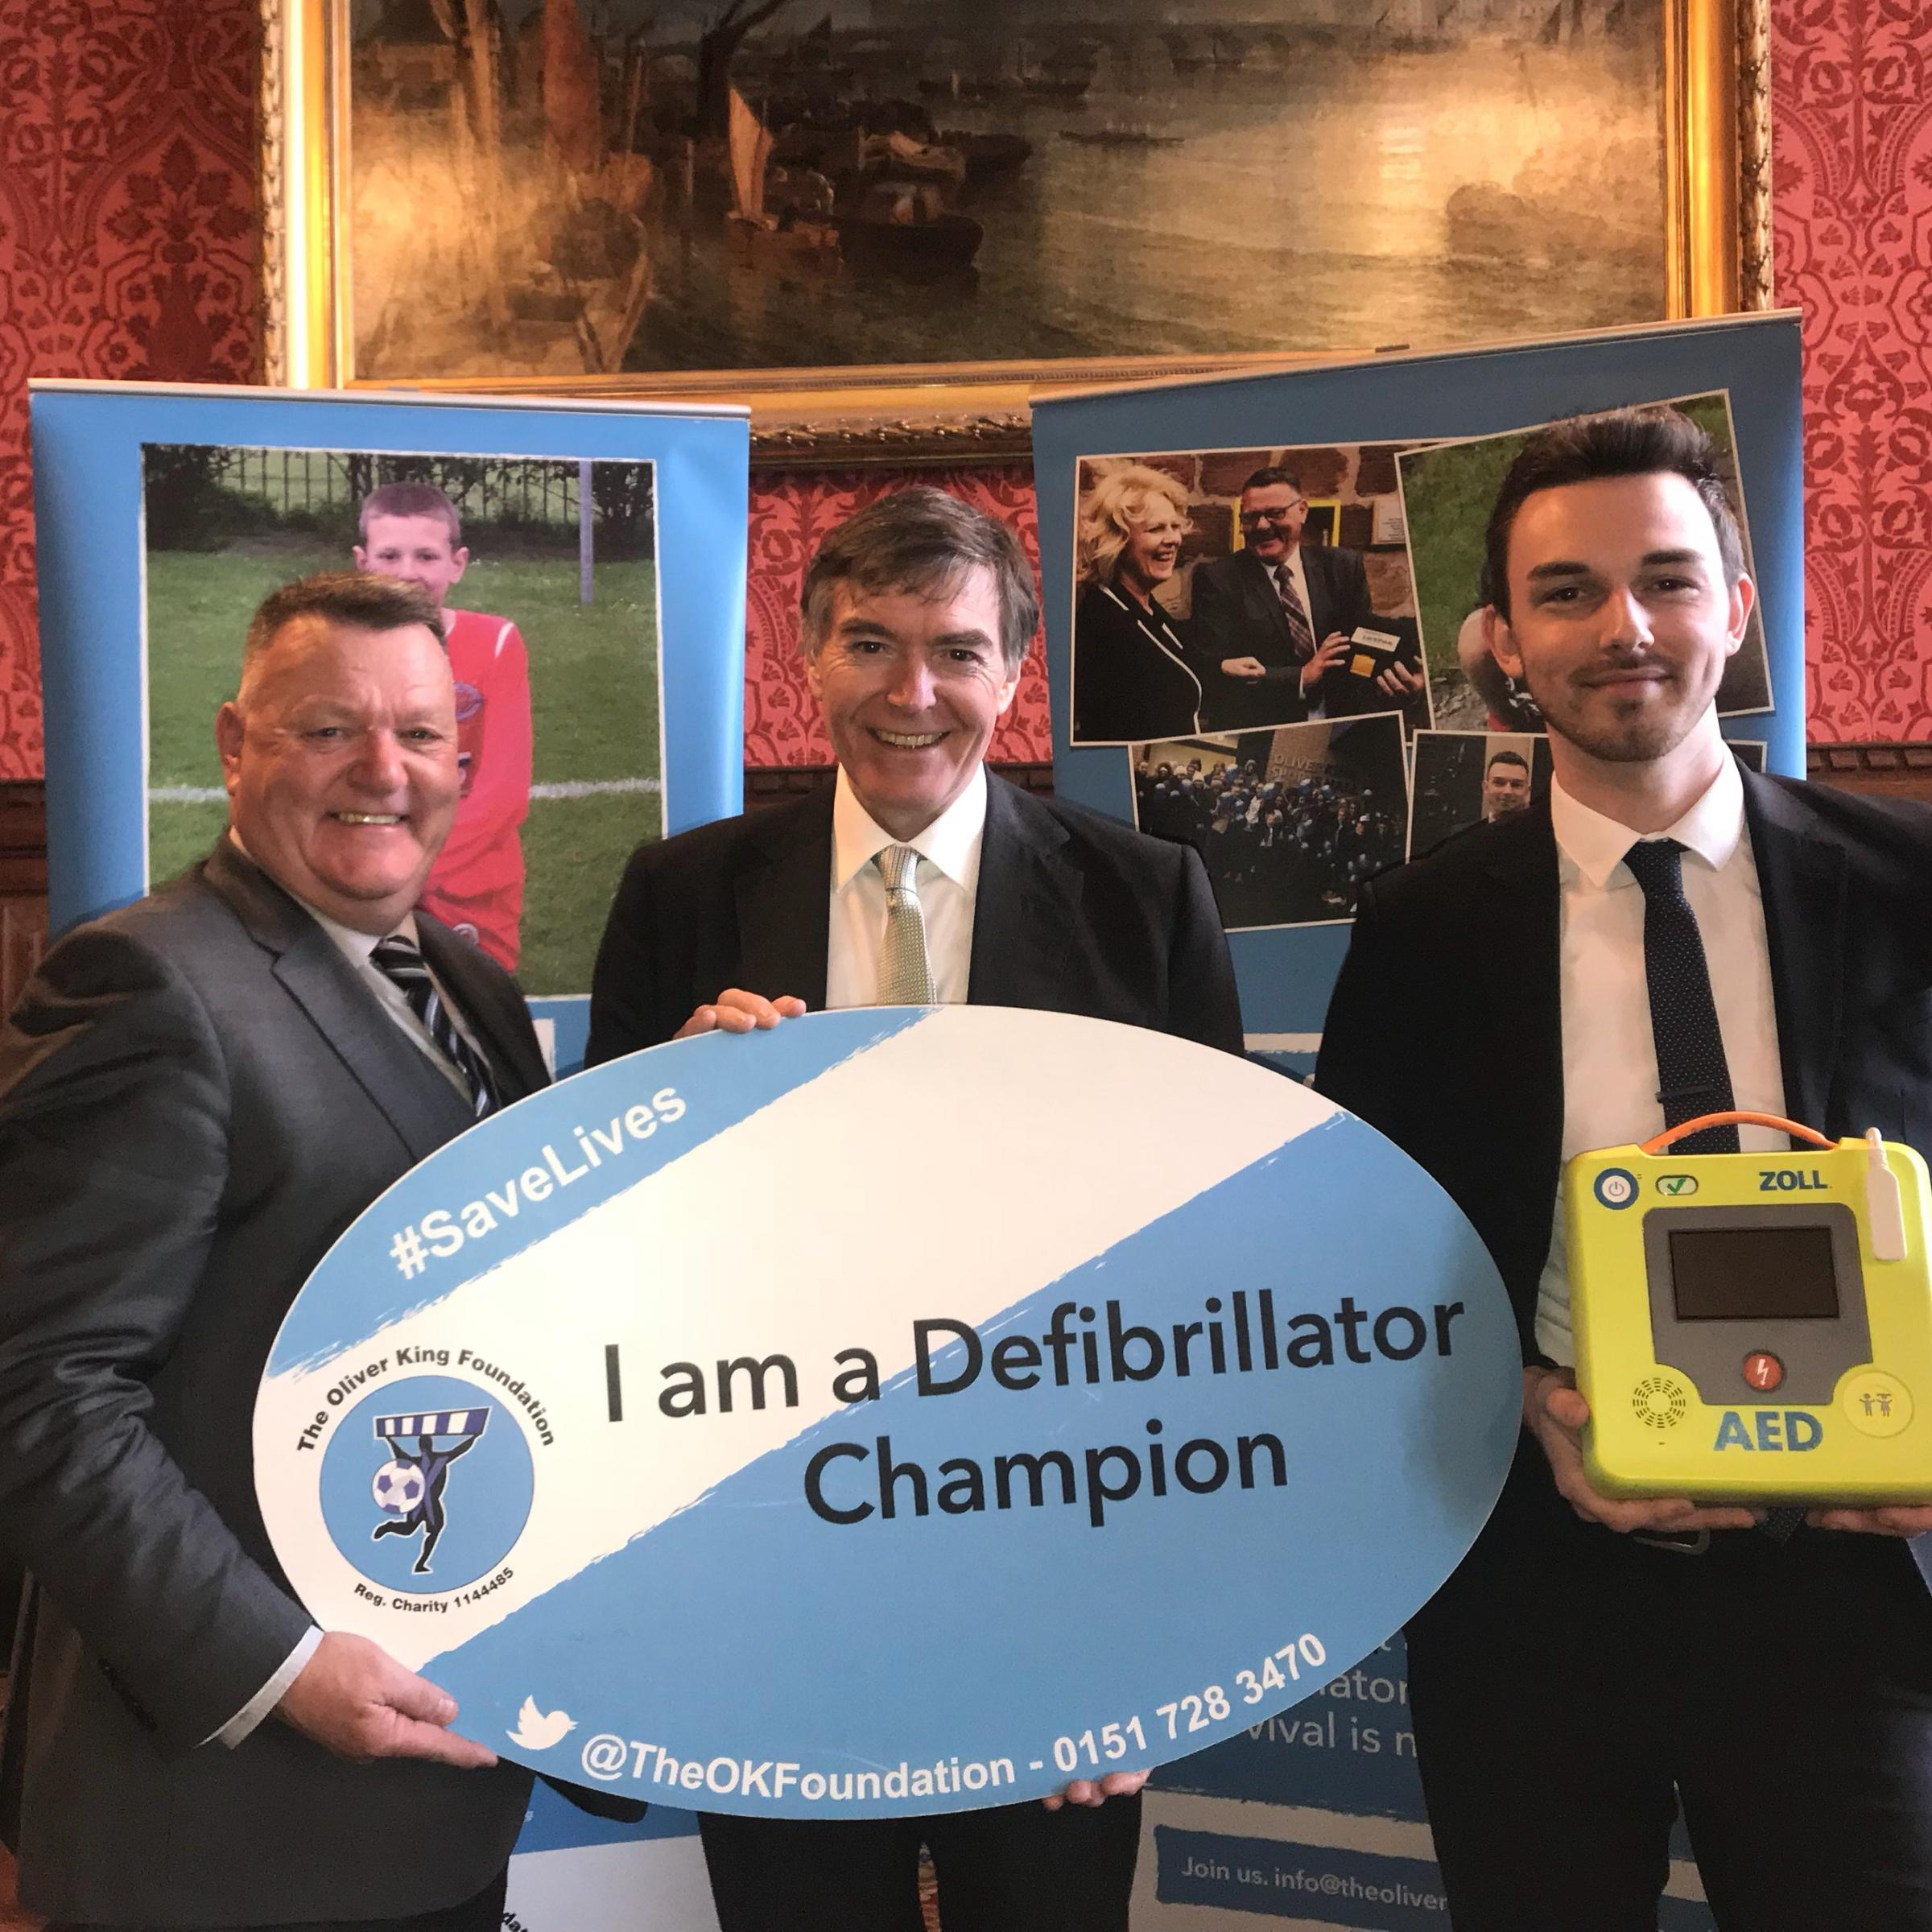 Philip Dunne MP (centre) becomes a defibrilator champion